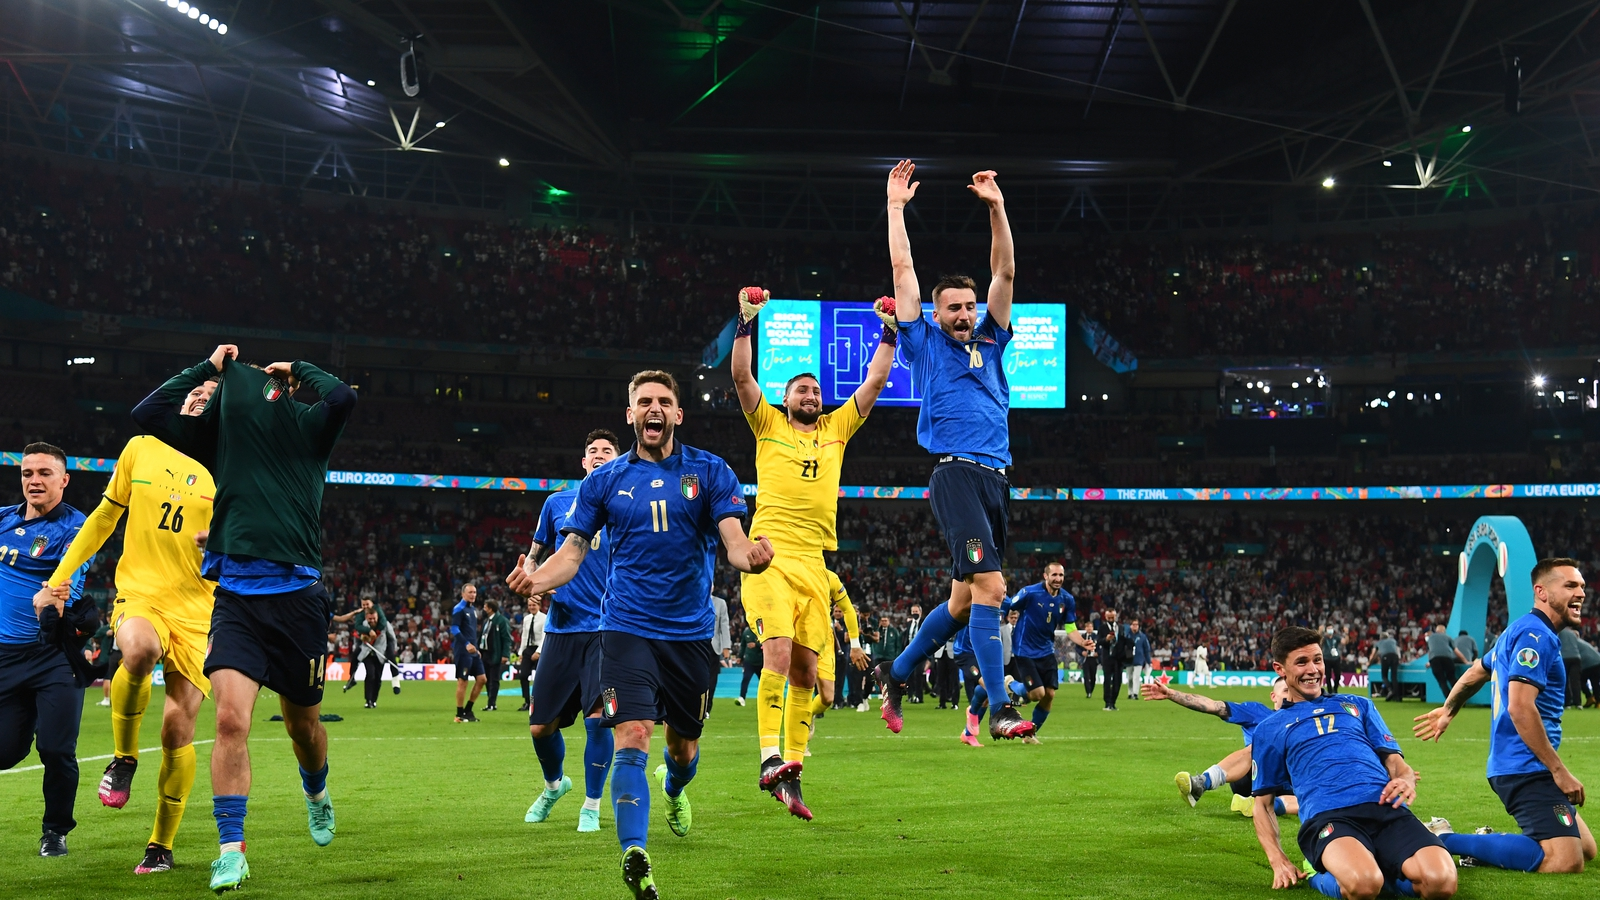 Over 1.1m watch conclusion of Euro 2020 on RTÉ